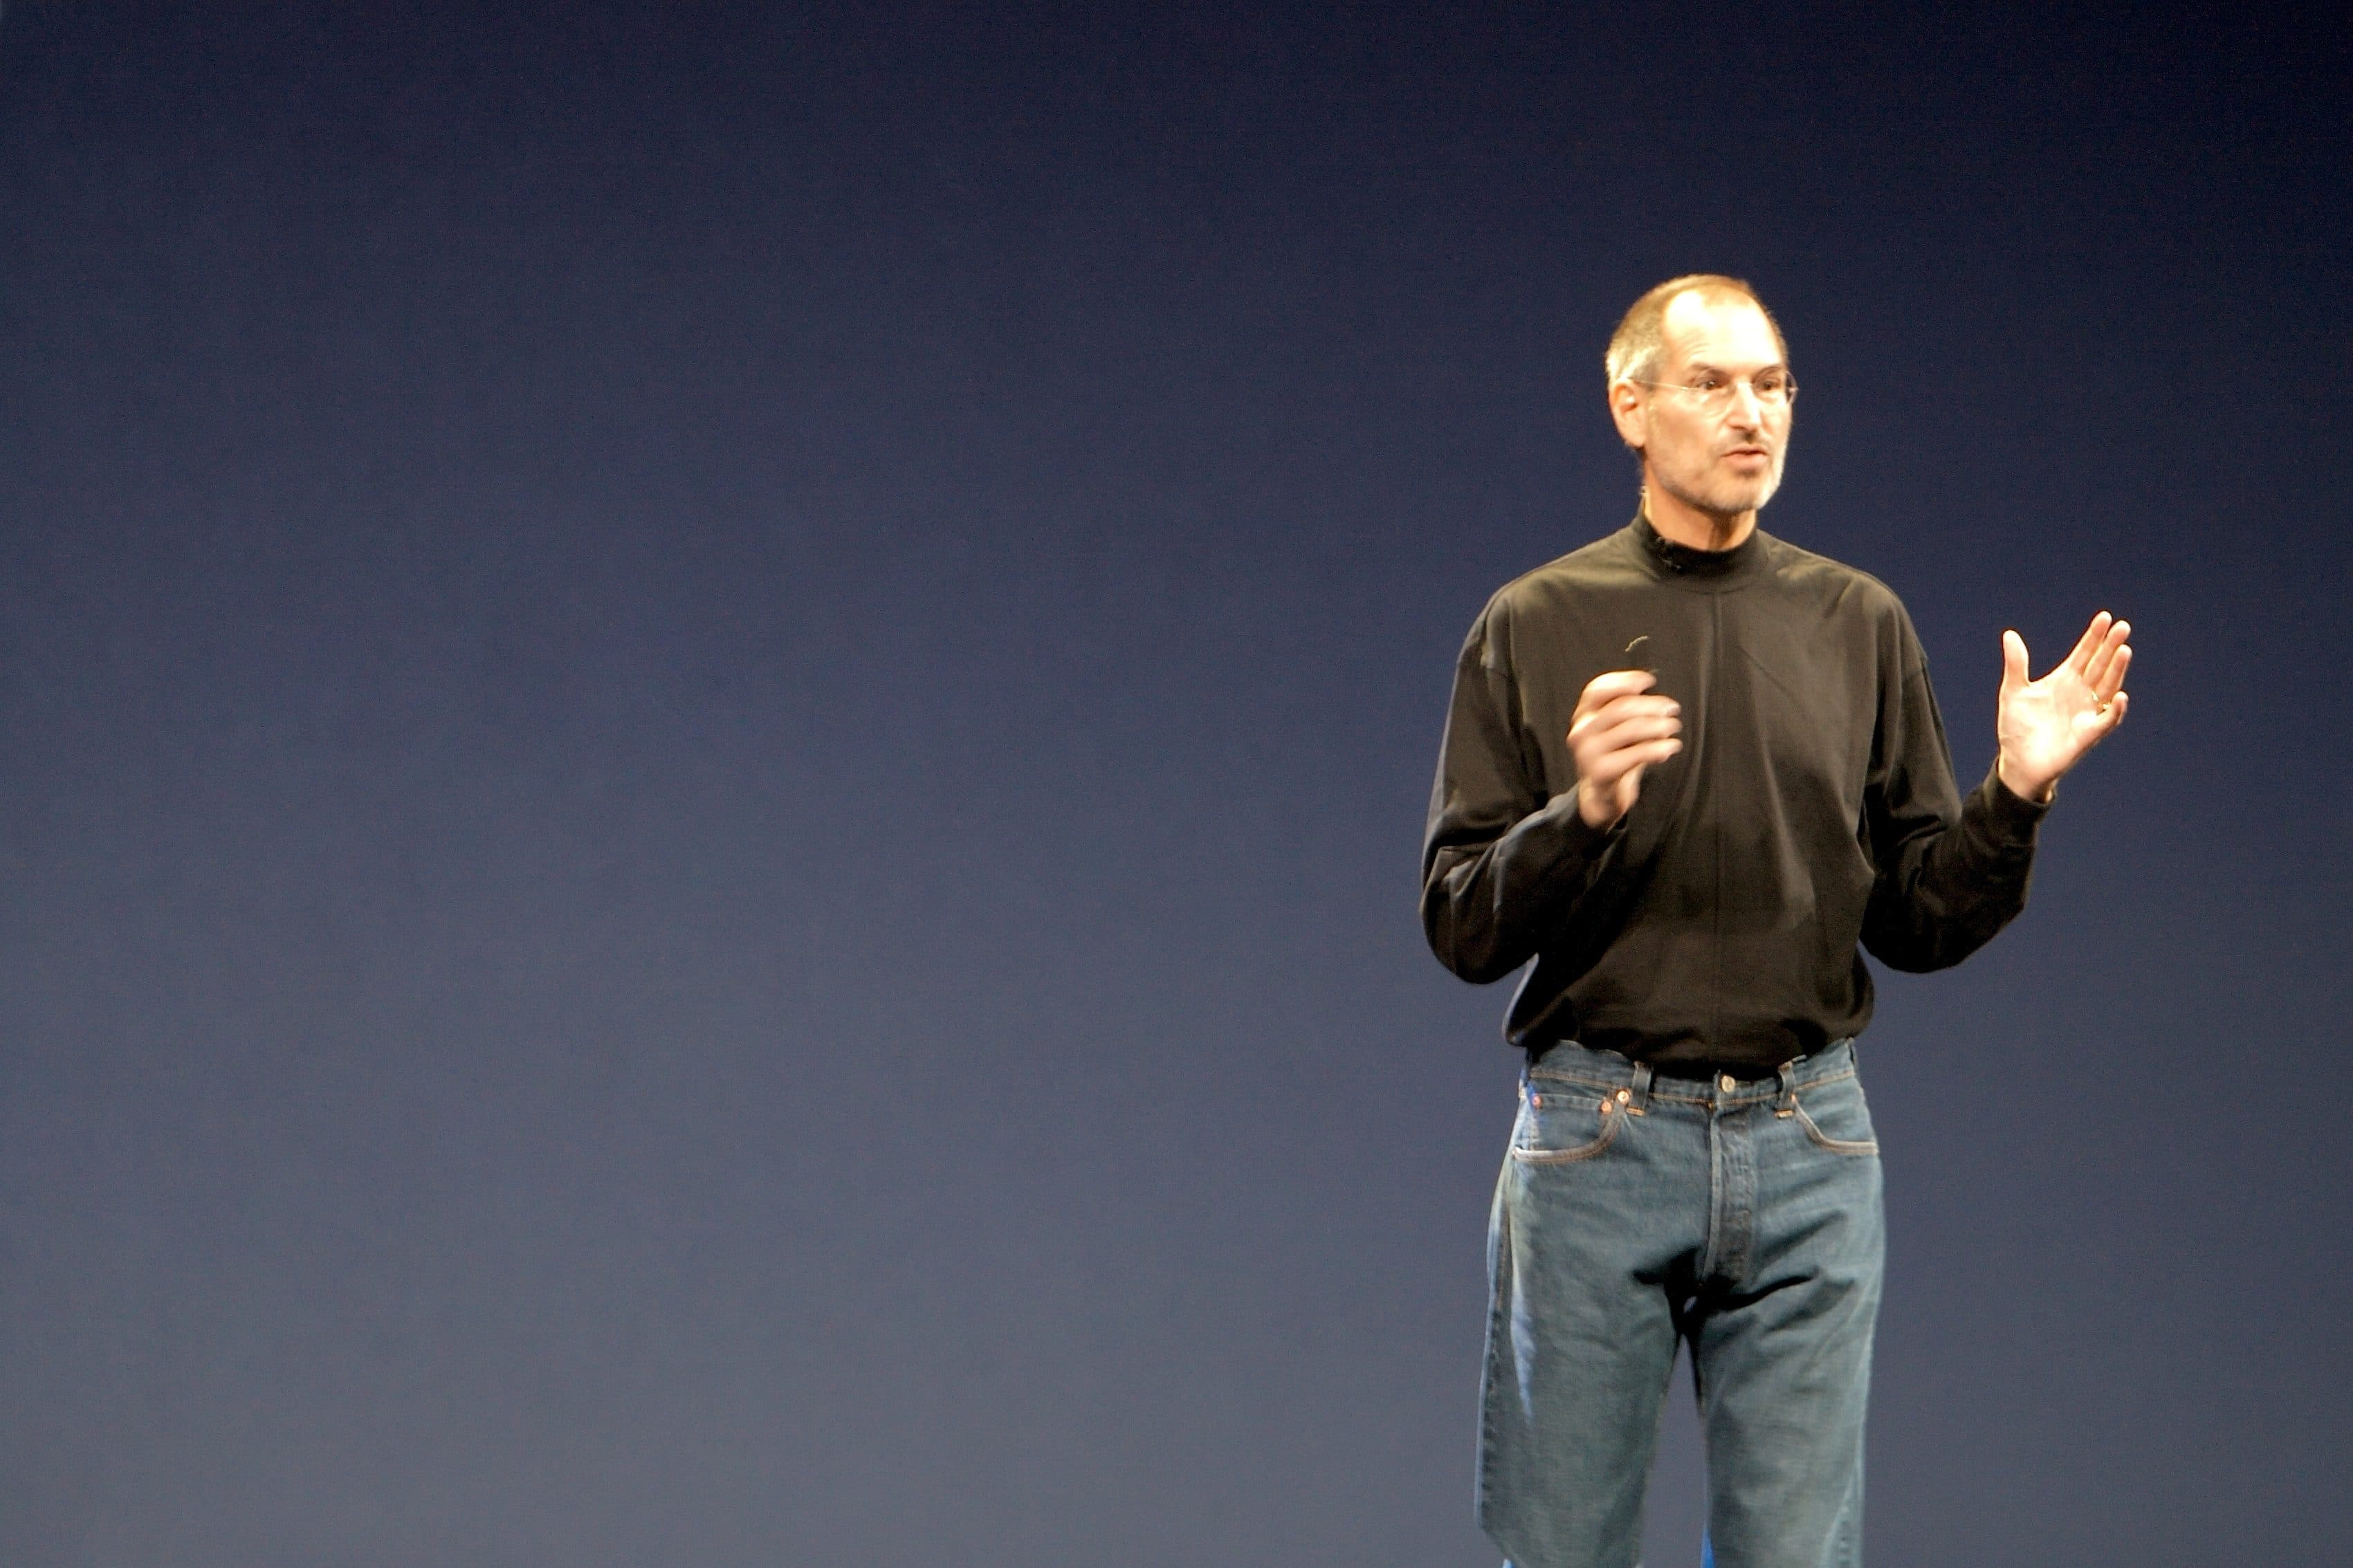 Steve Jobs gives a presentation while wearing a black turtleneck on stage.